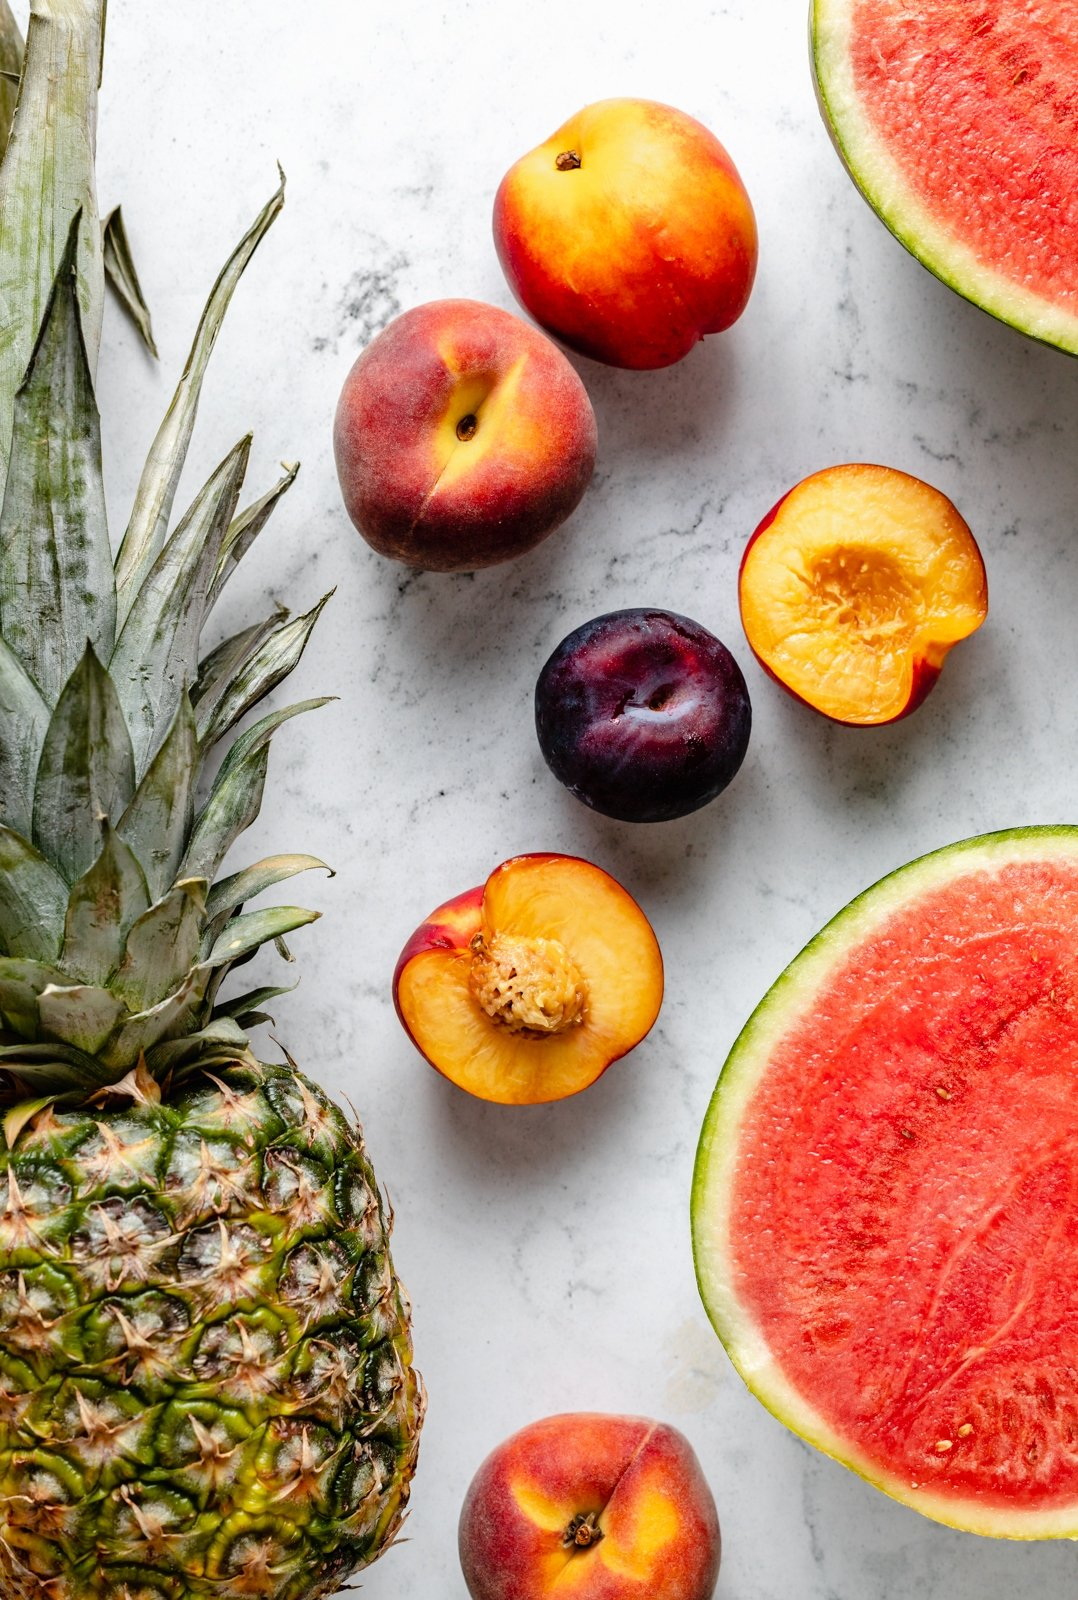 pineapple, peaches, plums, nectarines and watermelon on a grey board